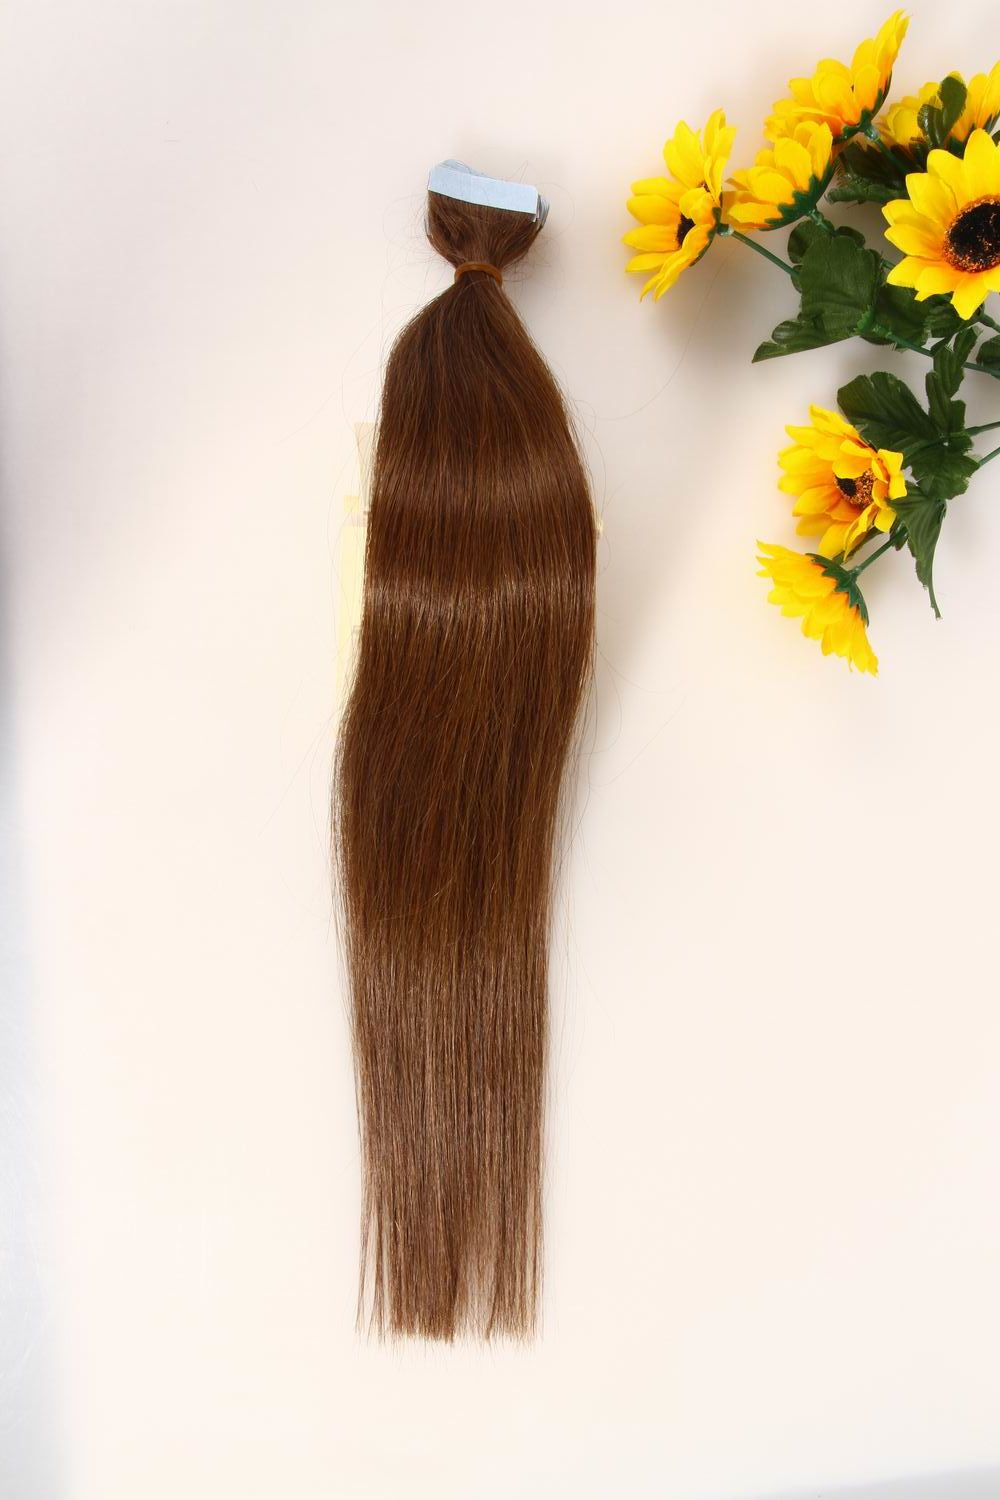 Find More Human Hair Extensions Information About Tape In Human Hair